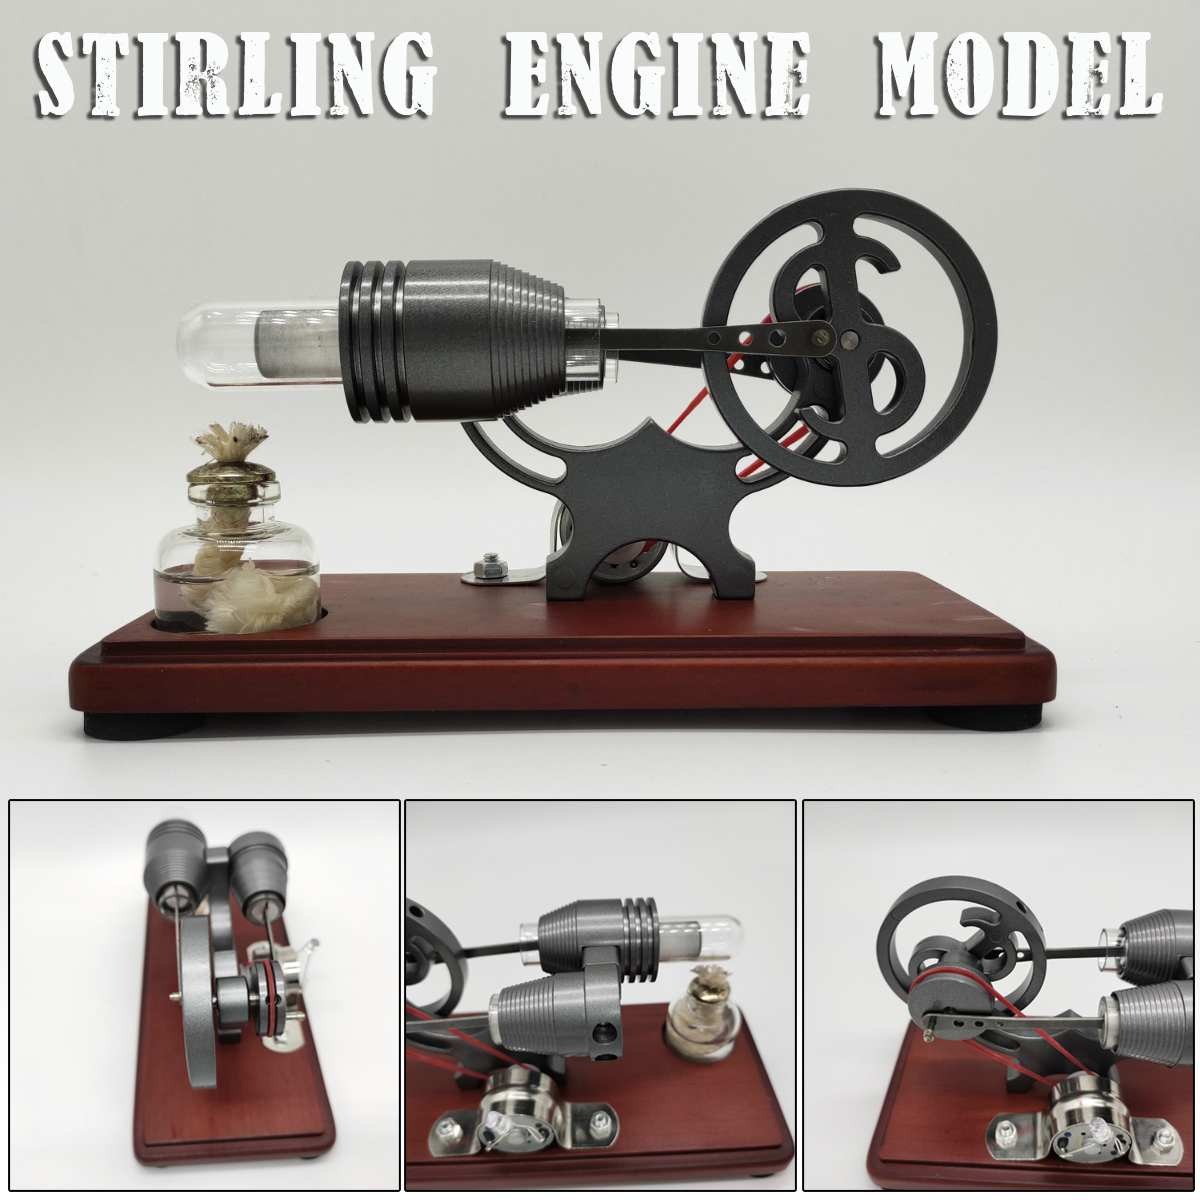 NEW Hot Air Stirling Engine Model Electric Generator Motor Physics Steam Power Education Toy Science Experiment Kit Set